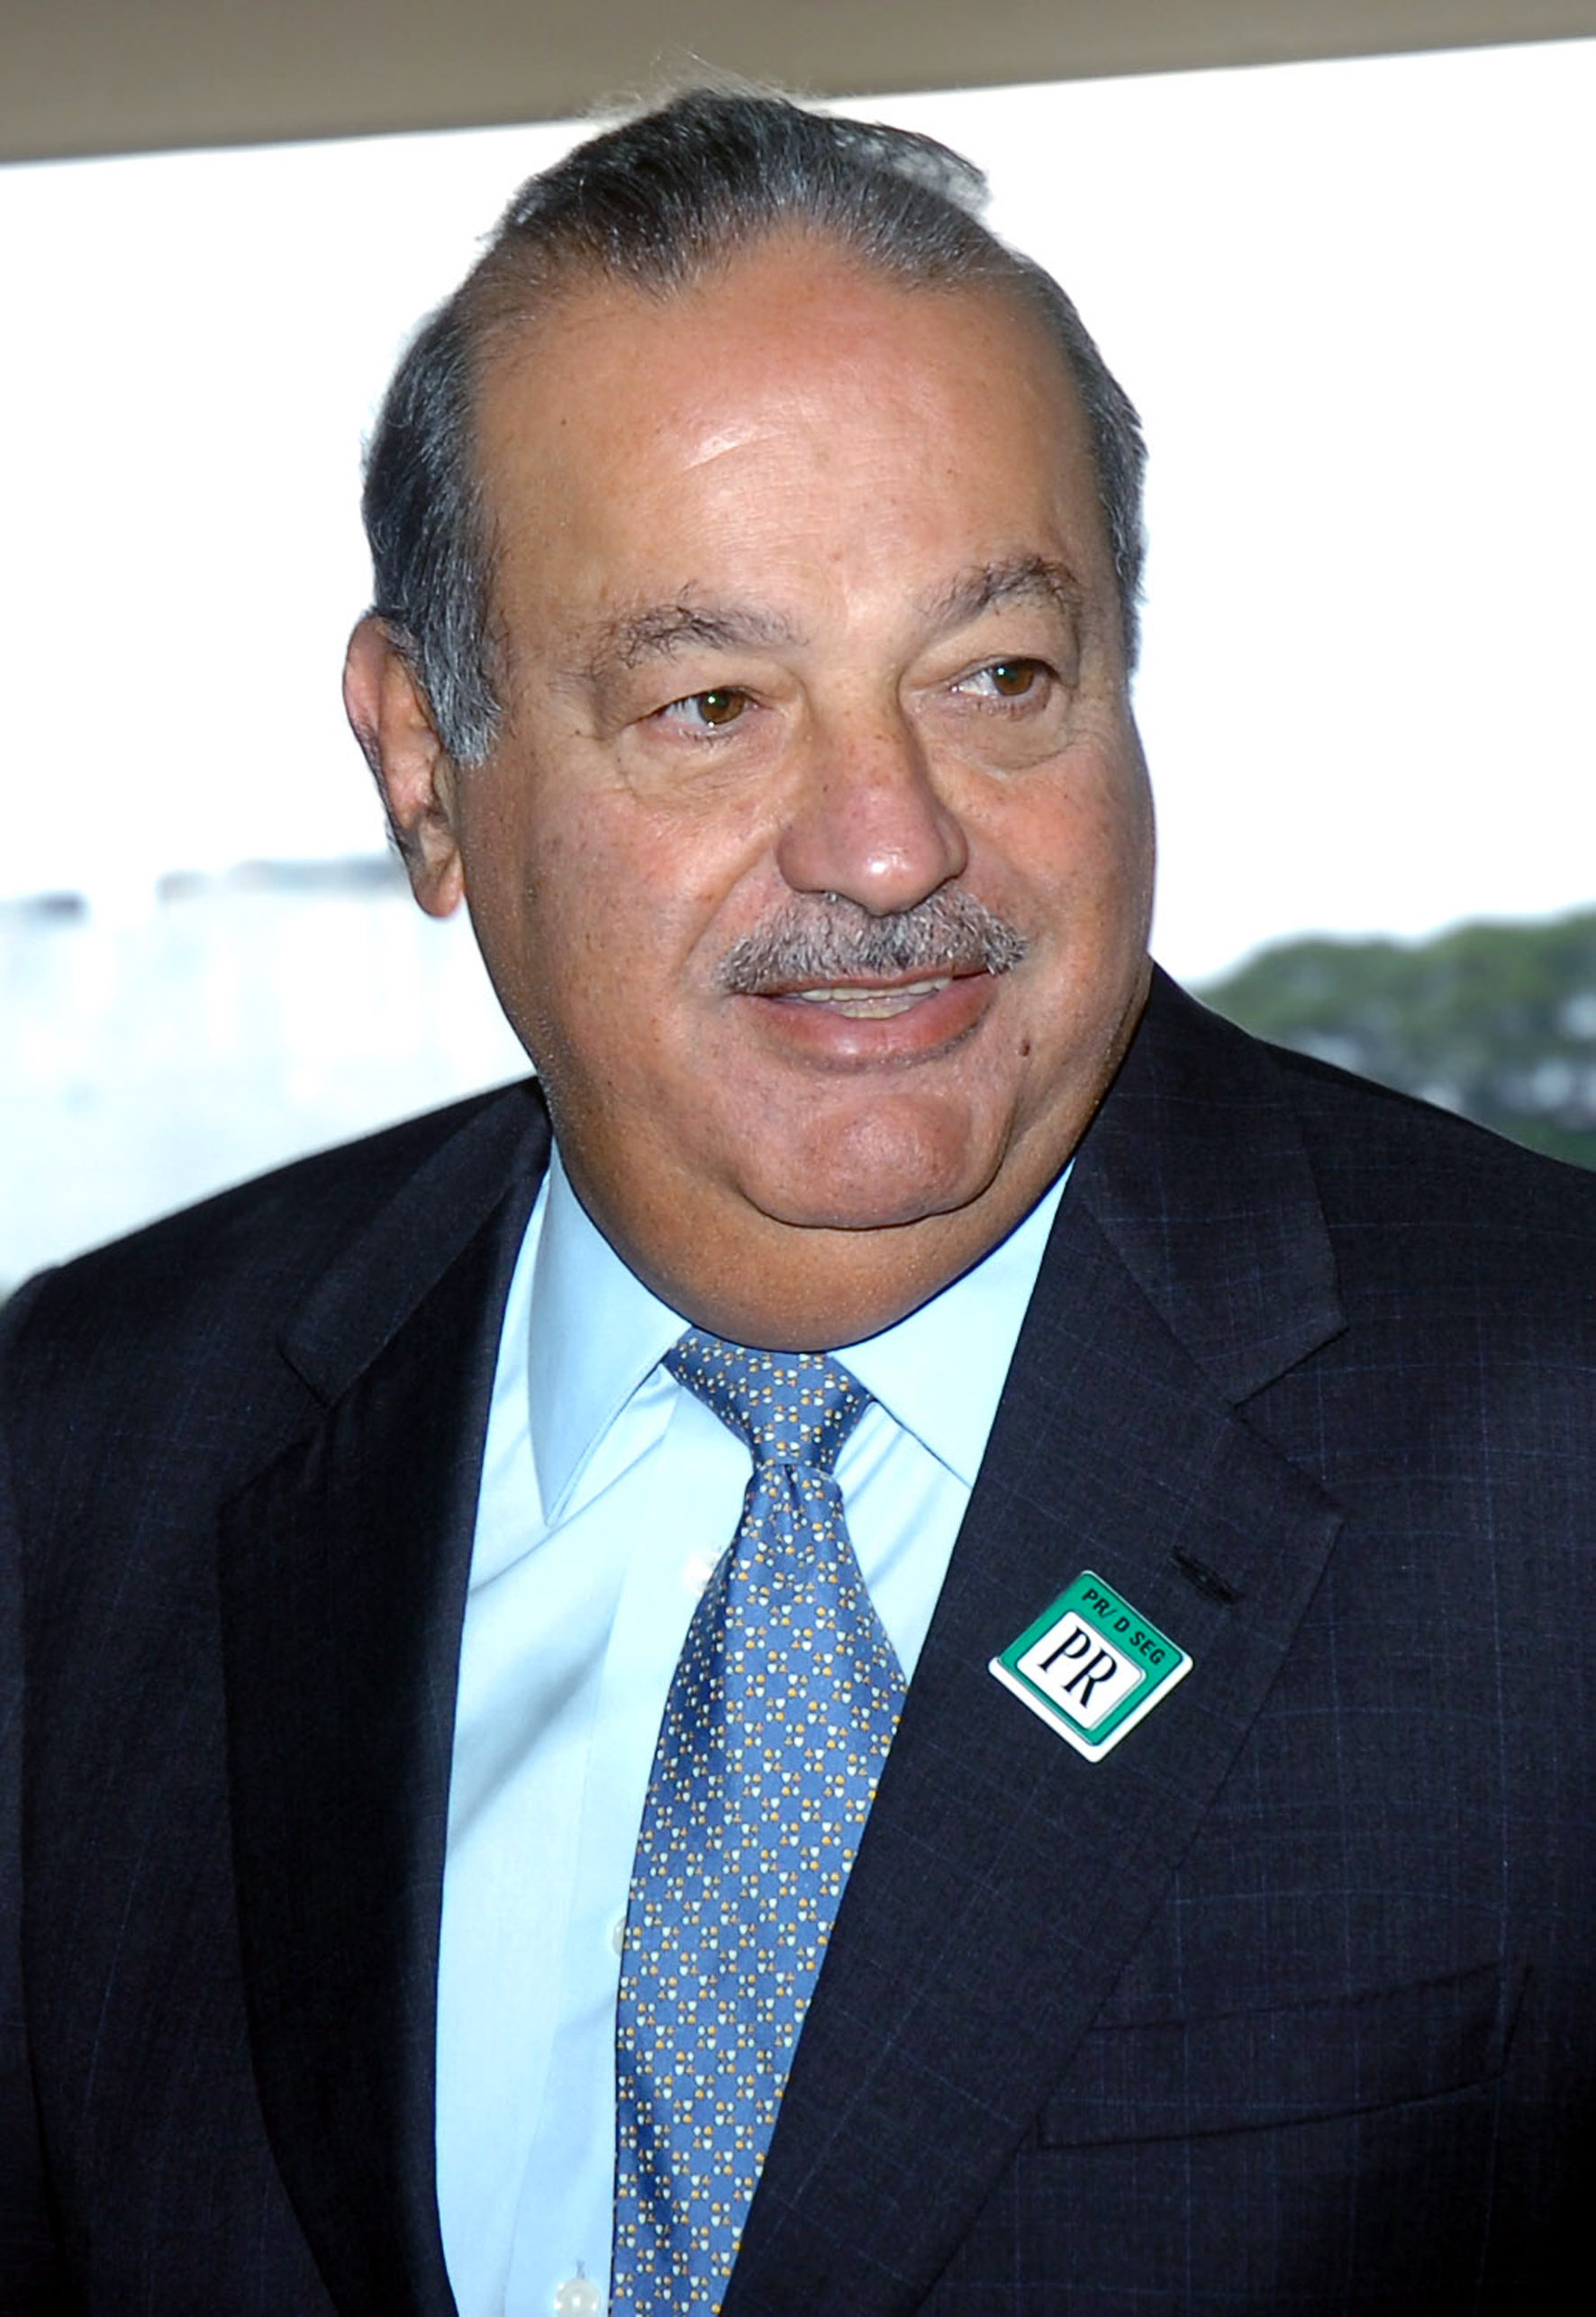 File:Carlos Slim Helú.jpg - Wikimedia Commons